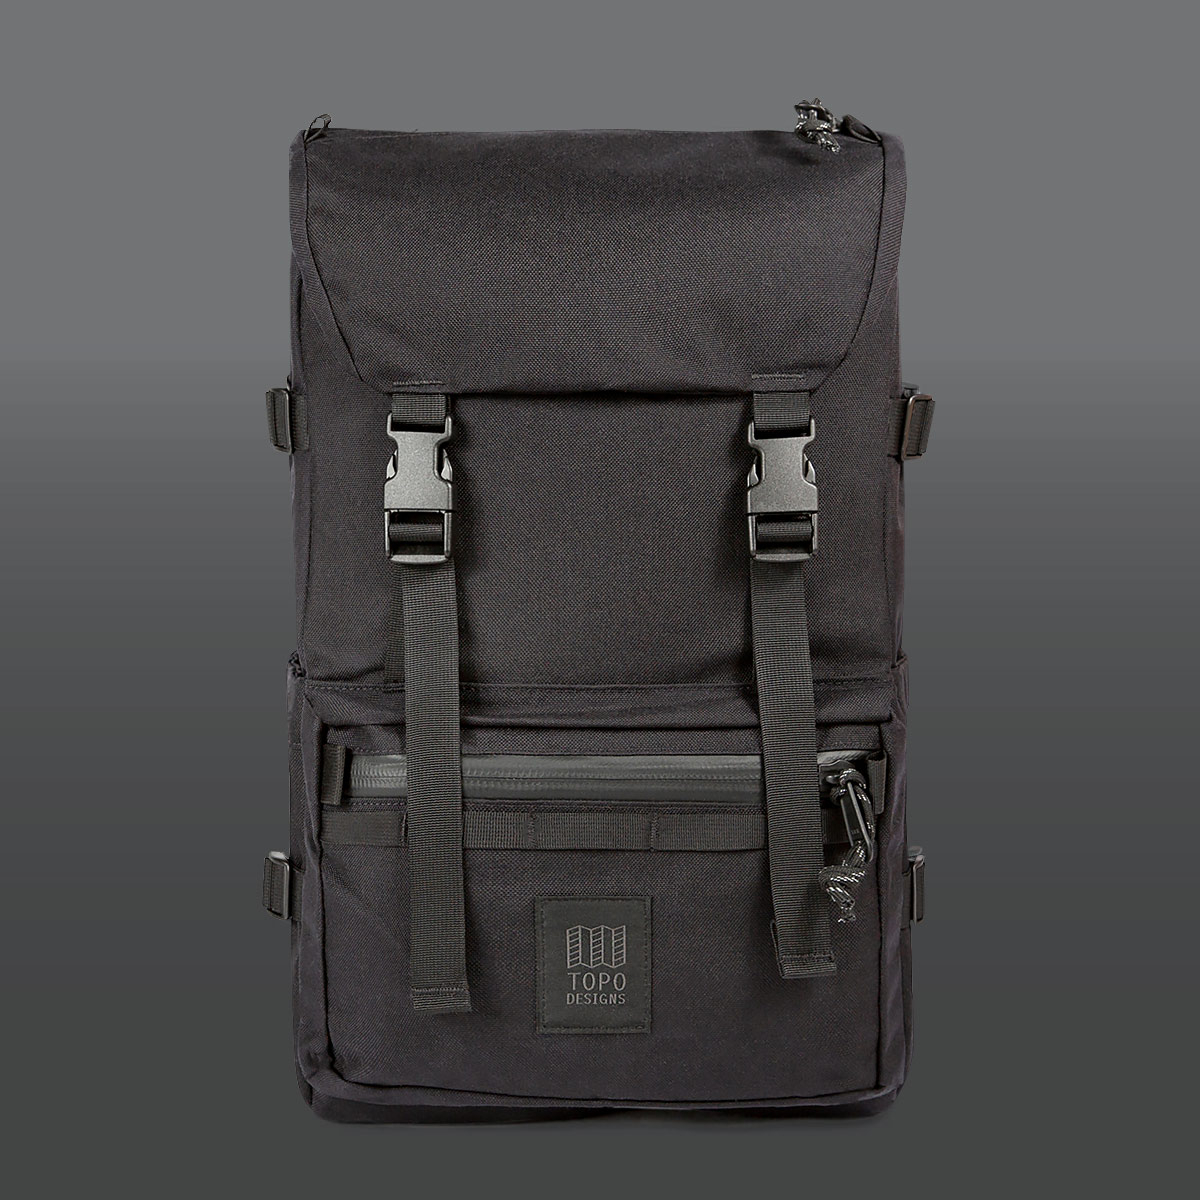 Topo Designs Rover Pack Tech Black, backpack built to work wherever you do